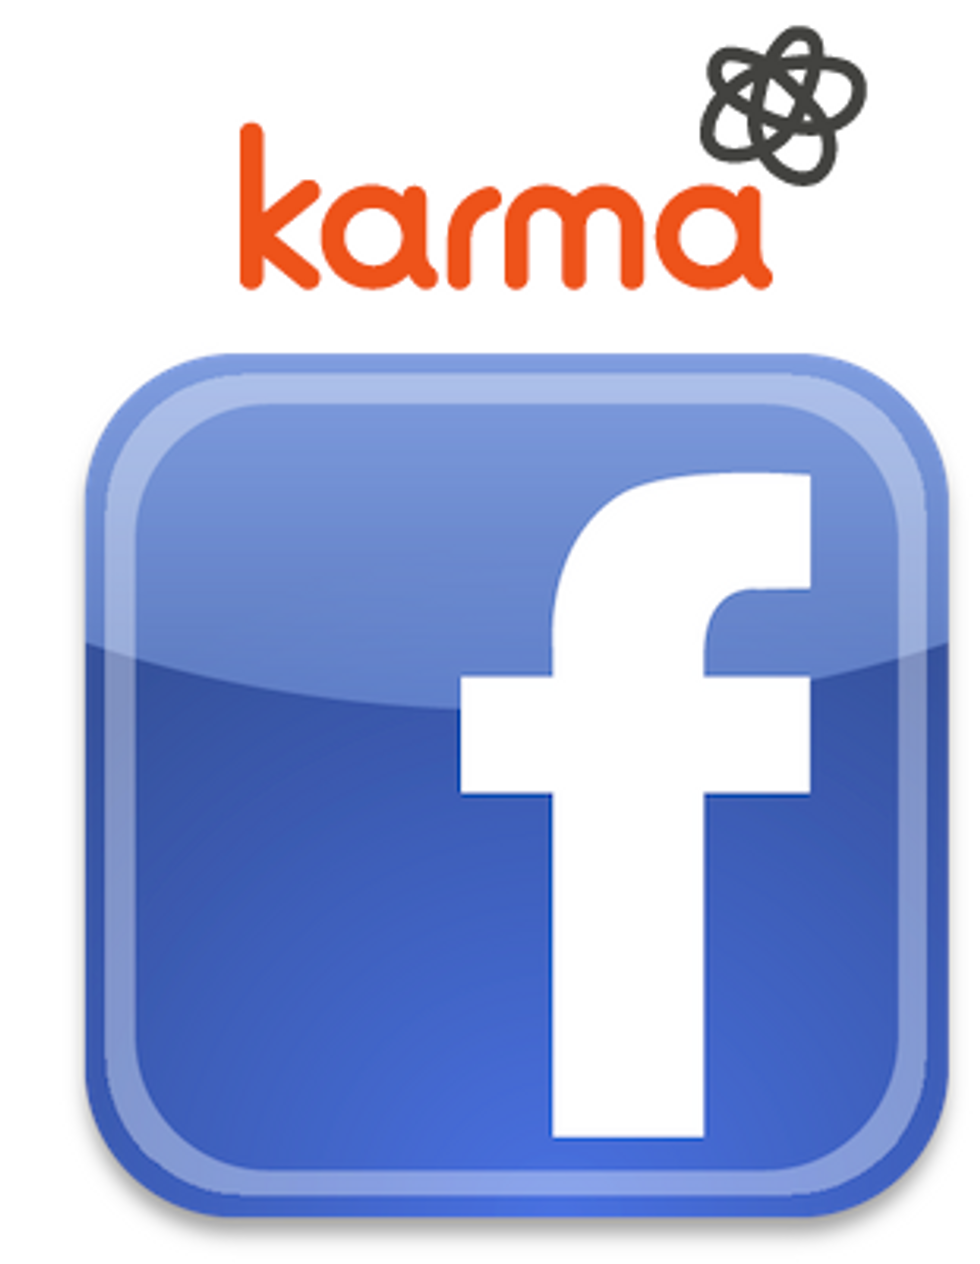 Karma could mean billions for Facebook.